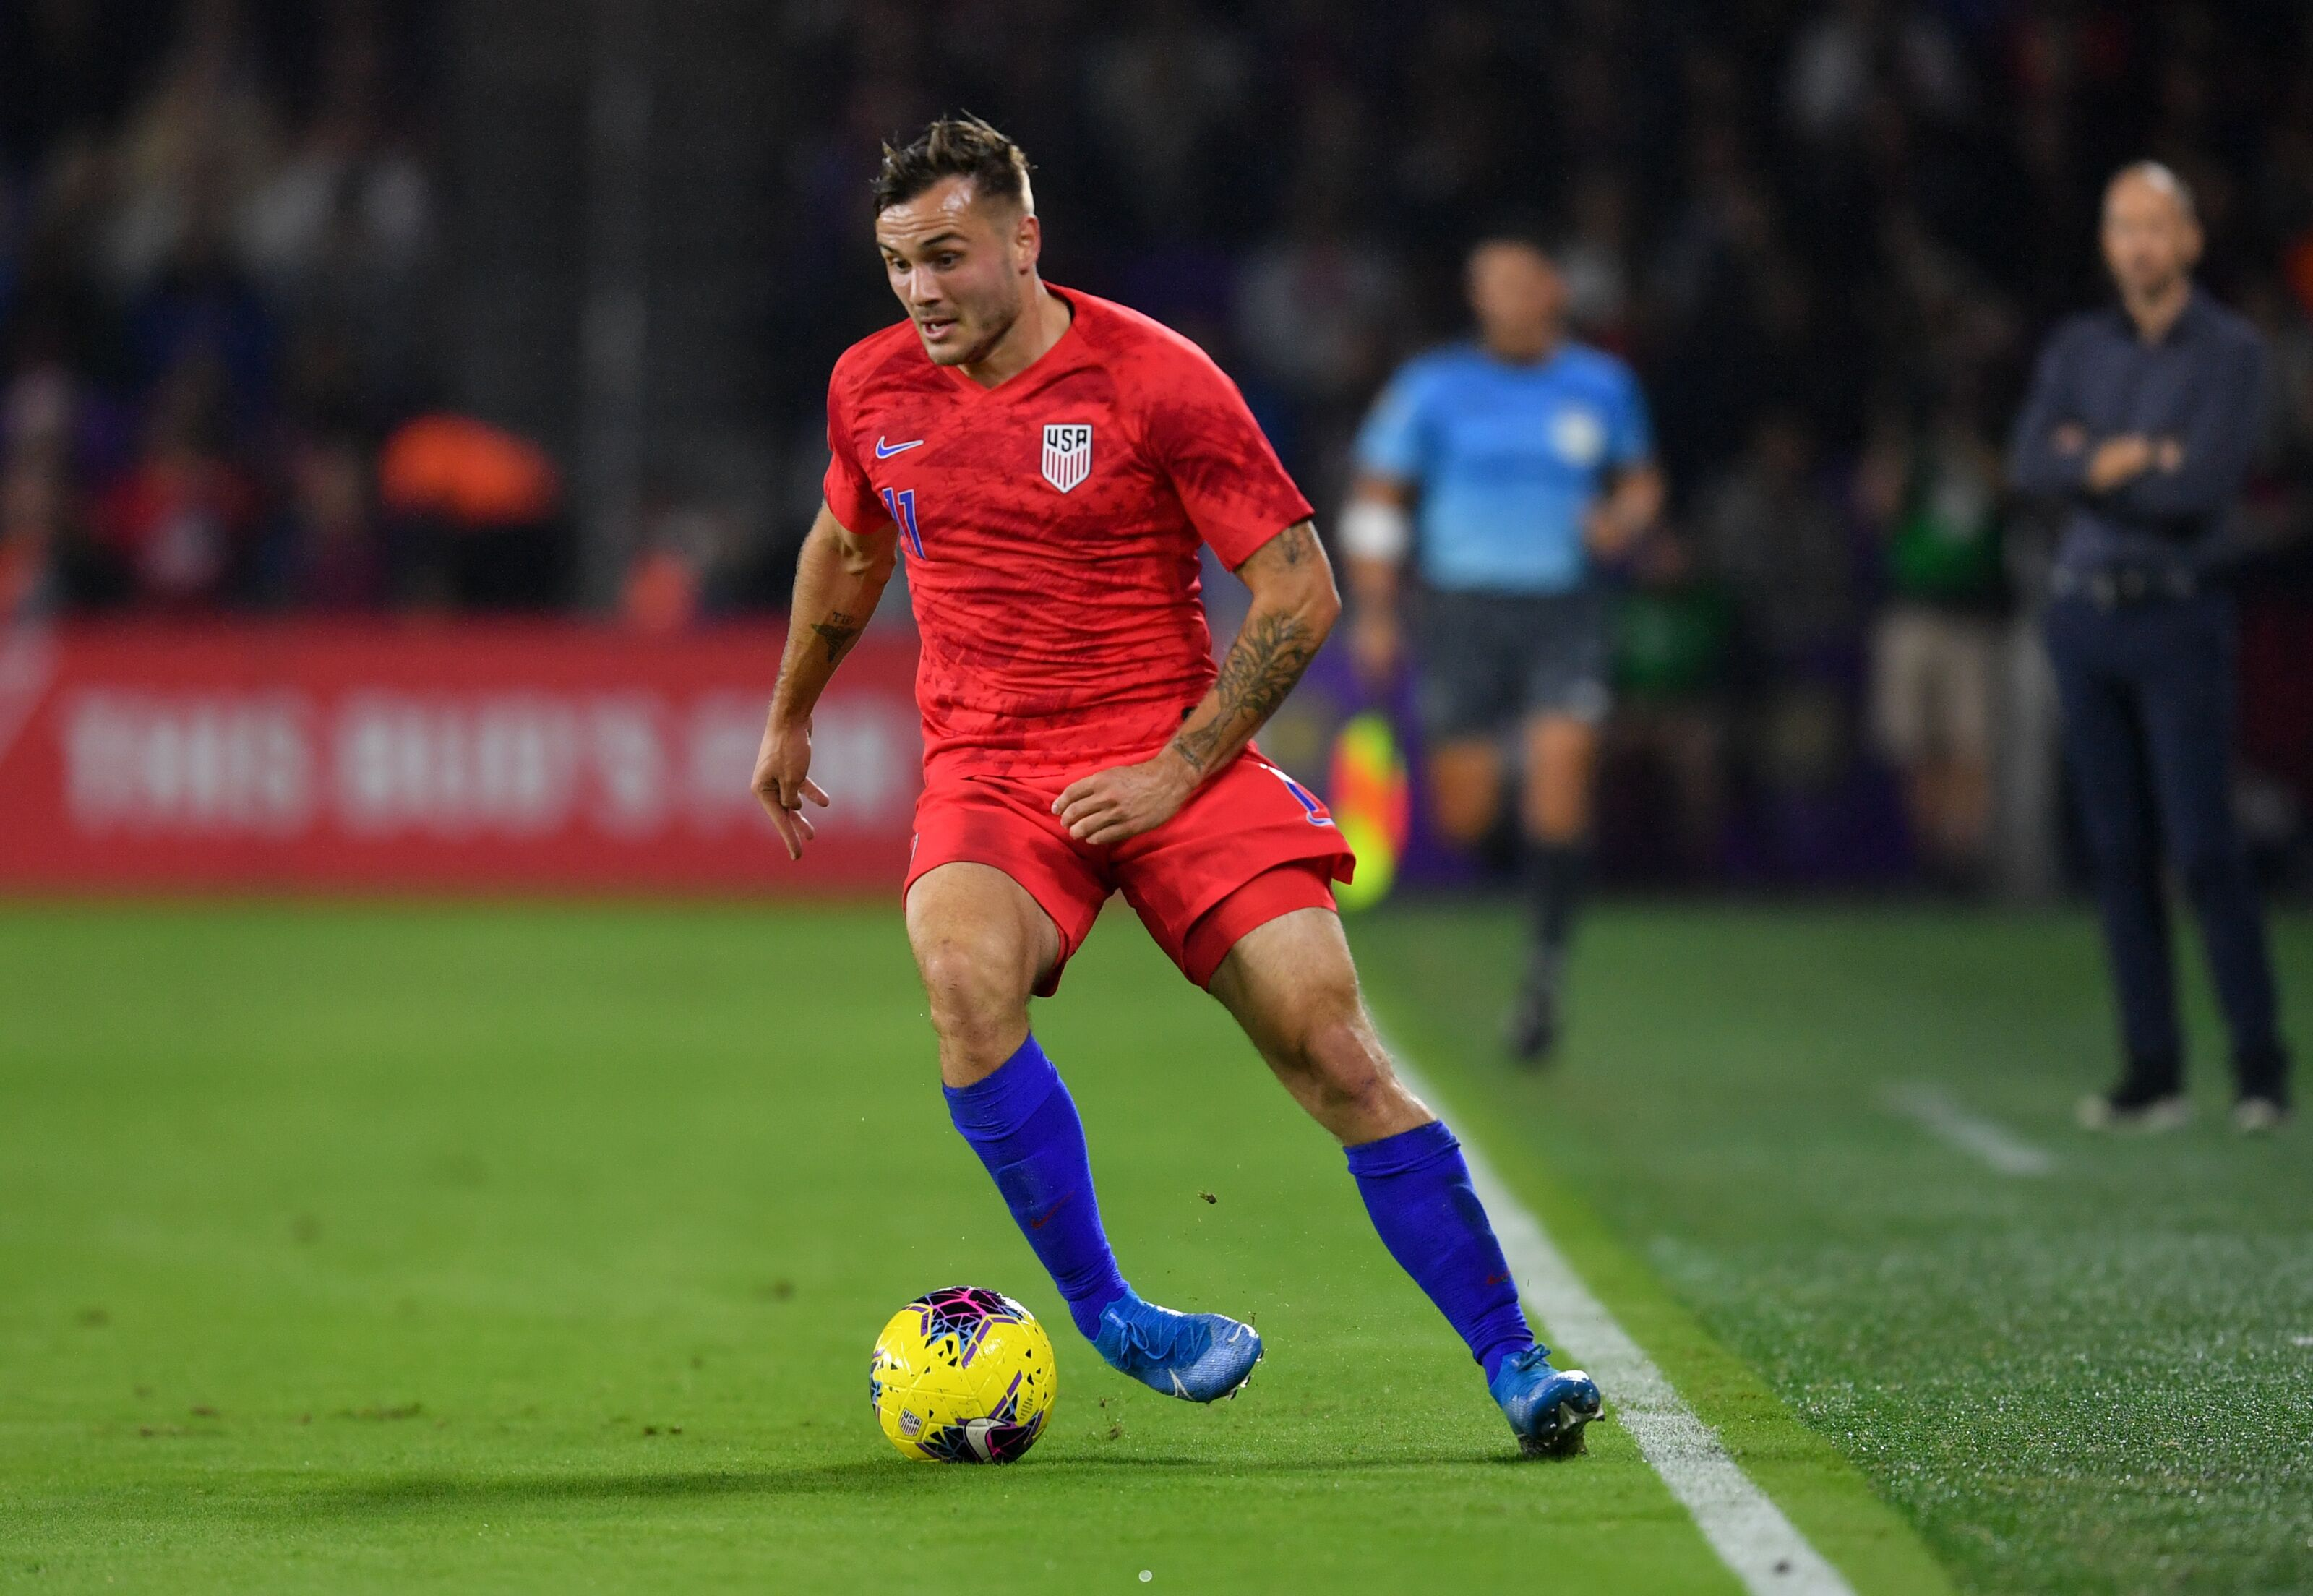 USMNT and Jordan Morris: It might be time for the next step